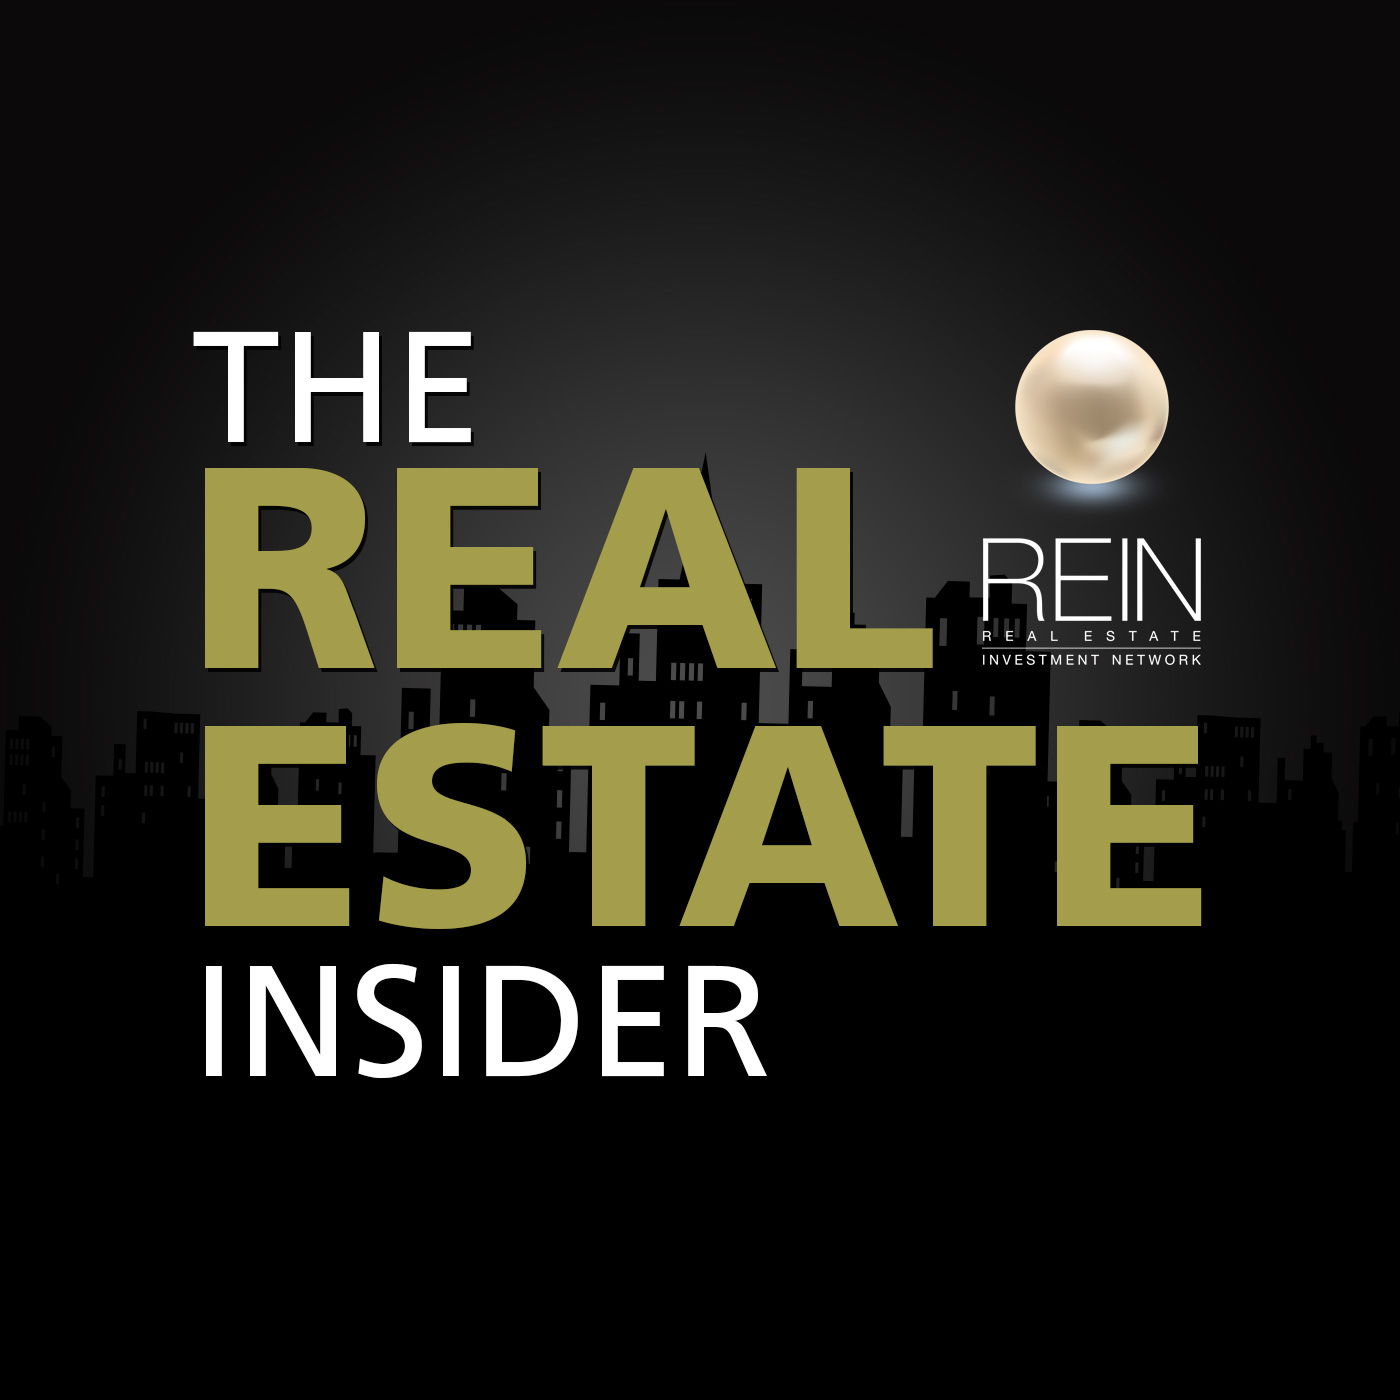 The Real Estate Insider